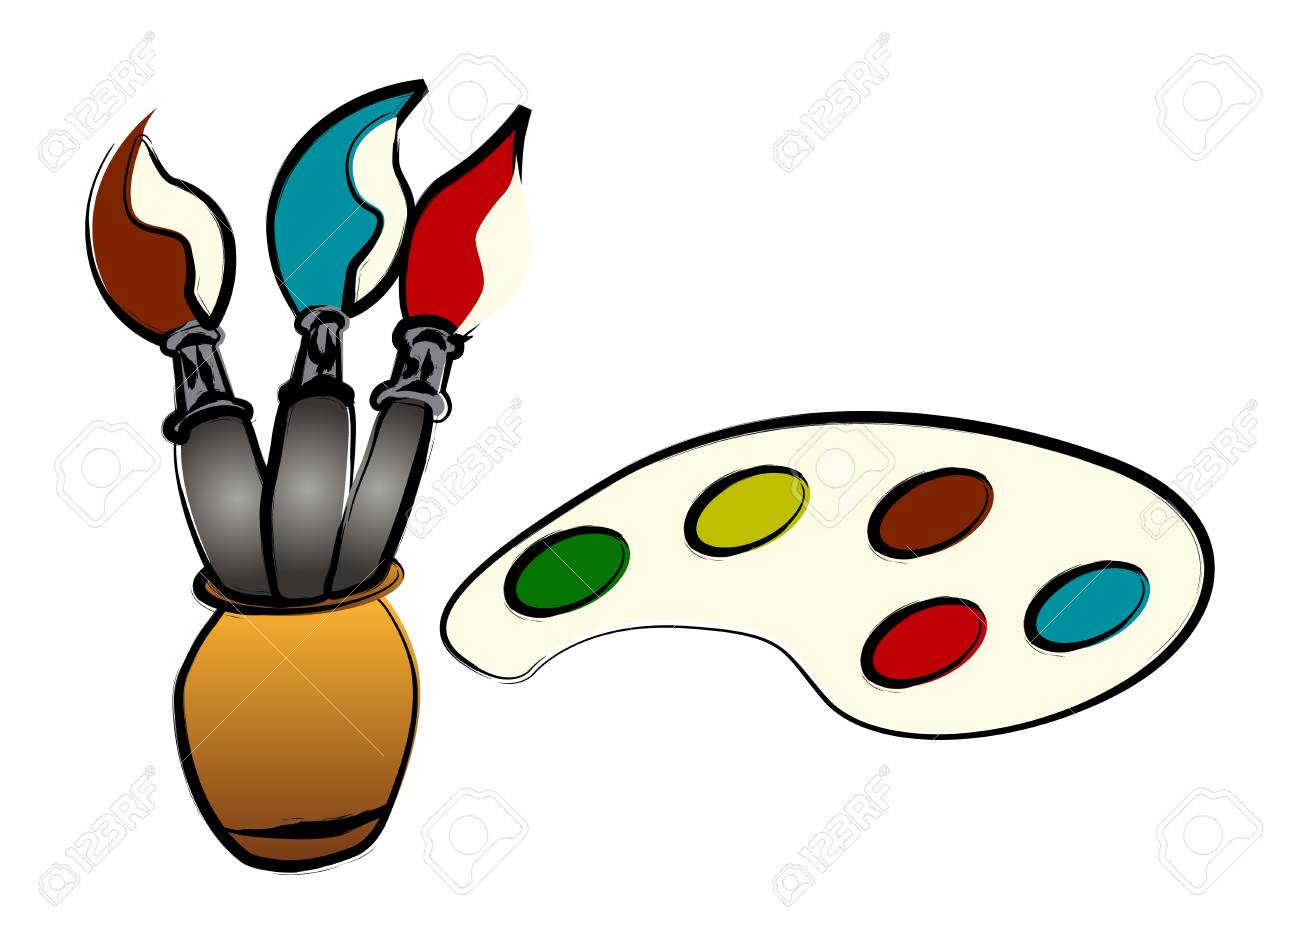 Brushes and paints illustration, over white Stock Vector - 14487293